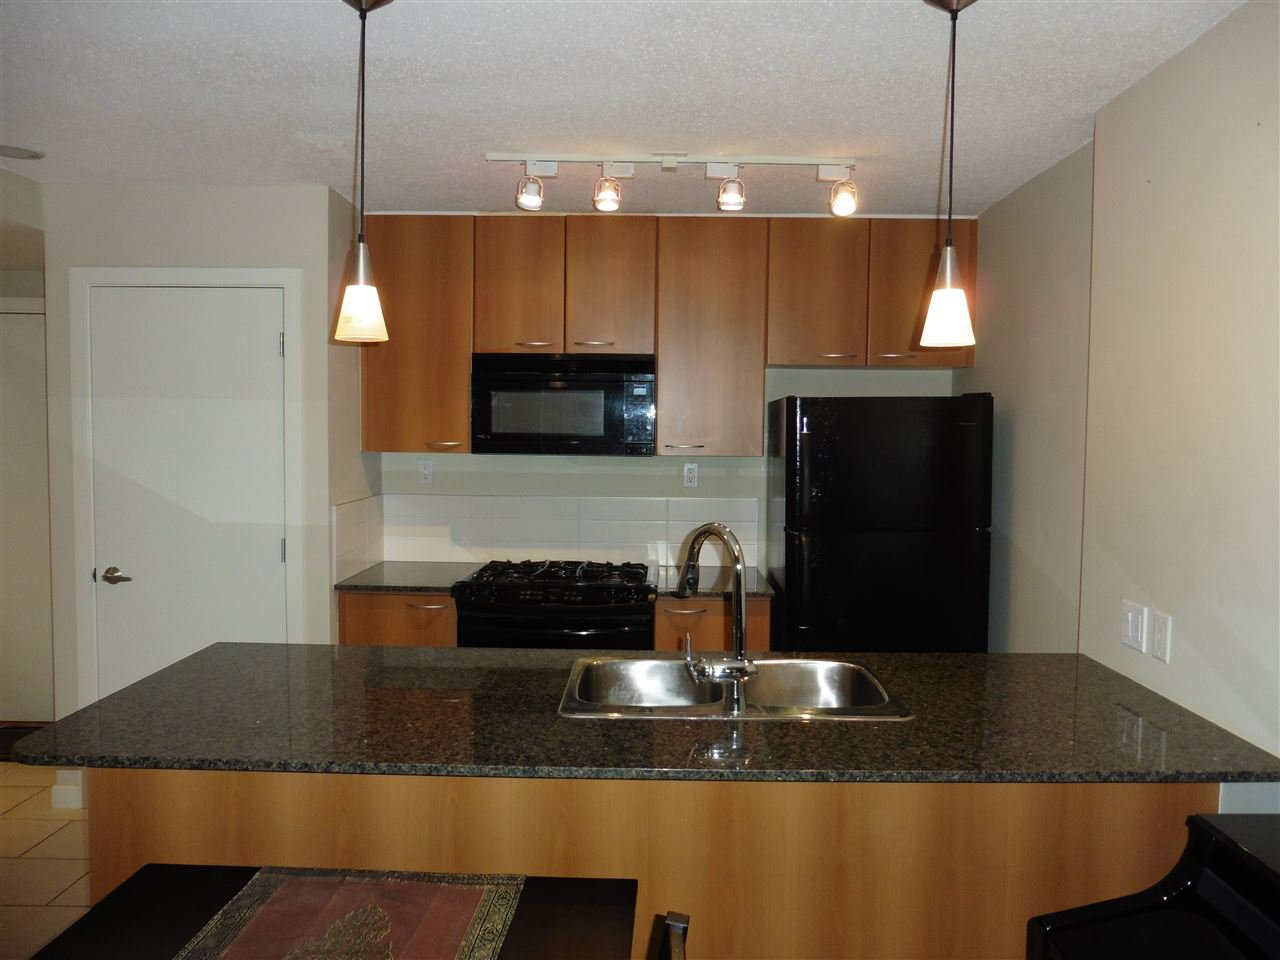 """Photo 4: Photos: 1101 7108 COLLIER Street in Burnaby: Highgate Condo for sale in """"ARCADIA WEST"""" (Burnaby South)  : MLS®# R2317674"""